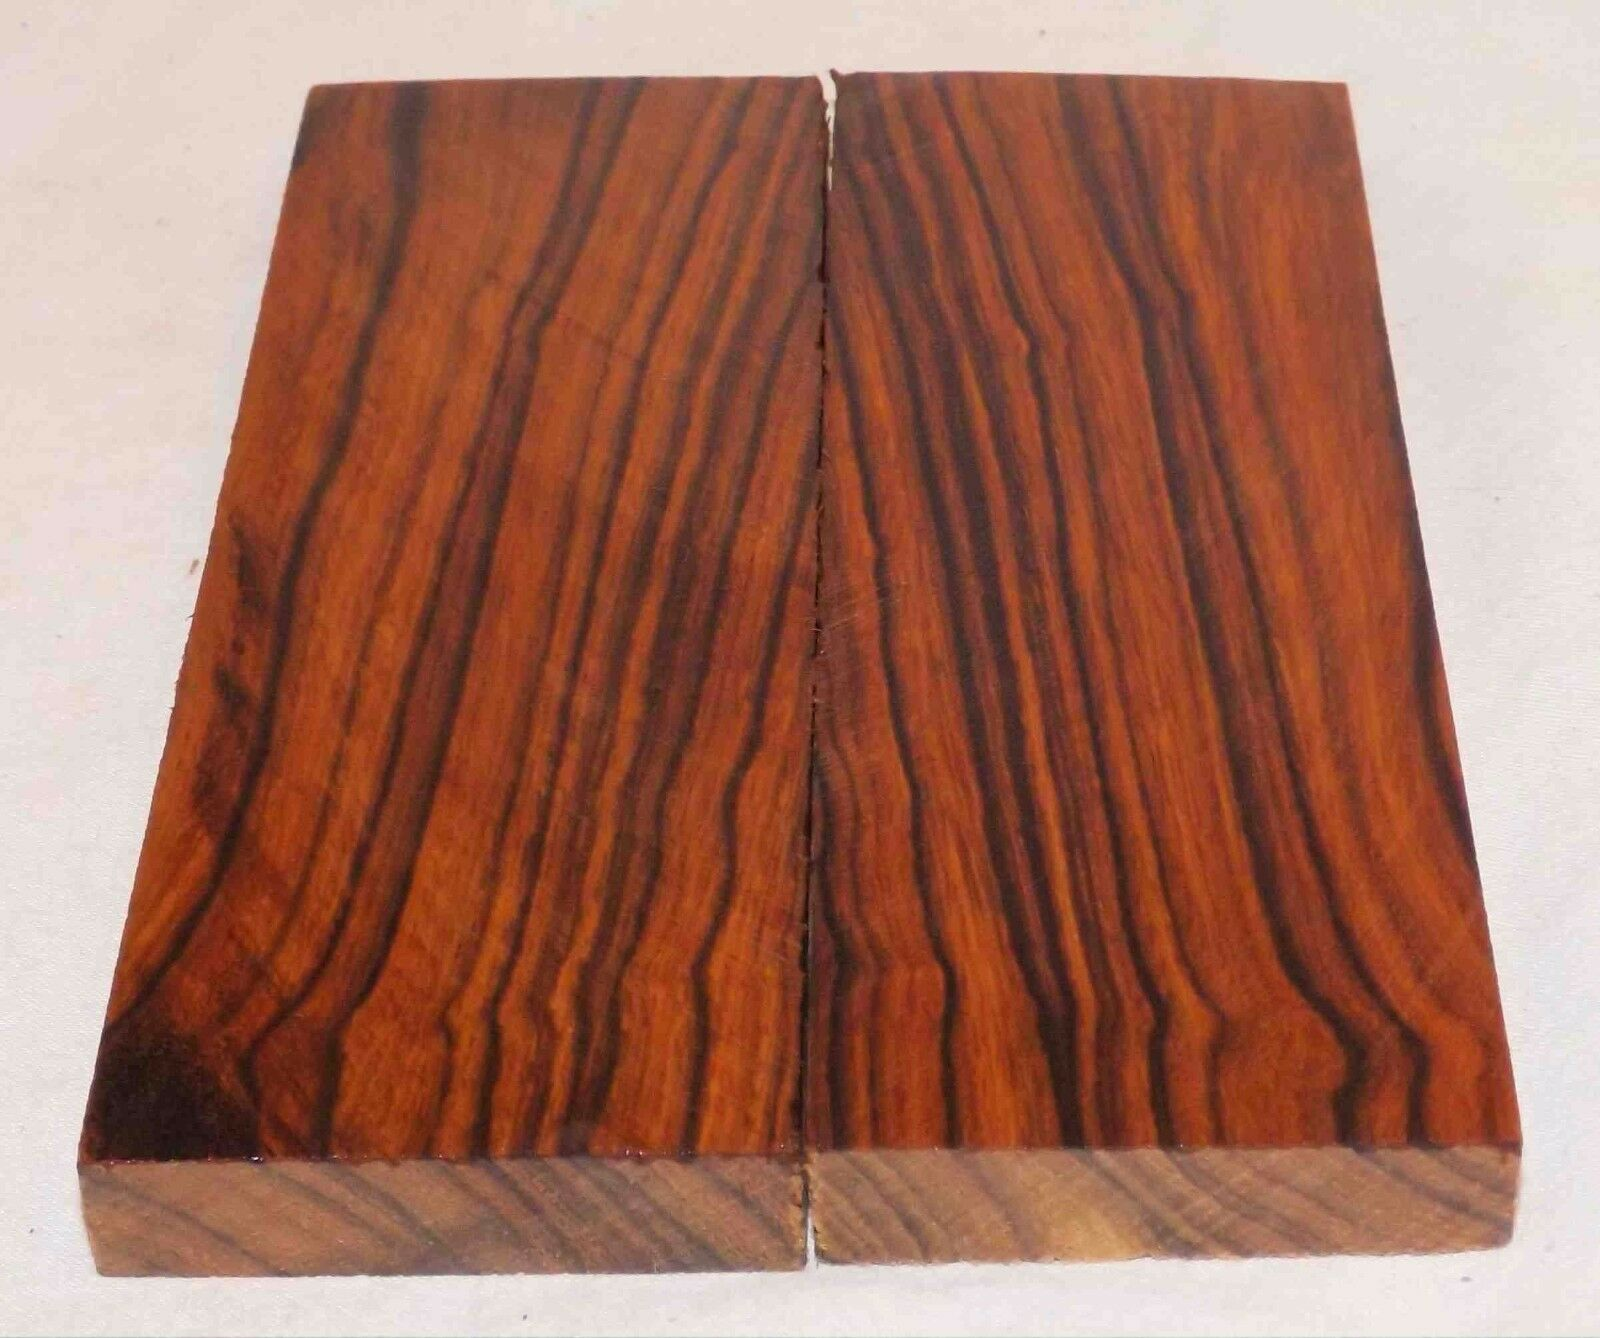 Desert Ironwood Bowie size bookmatched figured knife scales 5.2 x 2.0 x .37